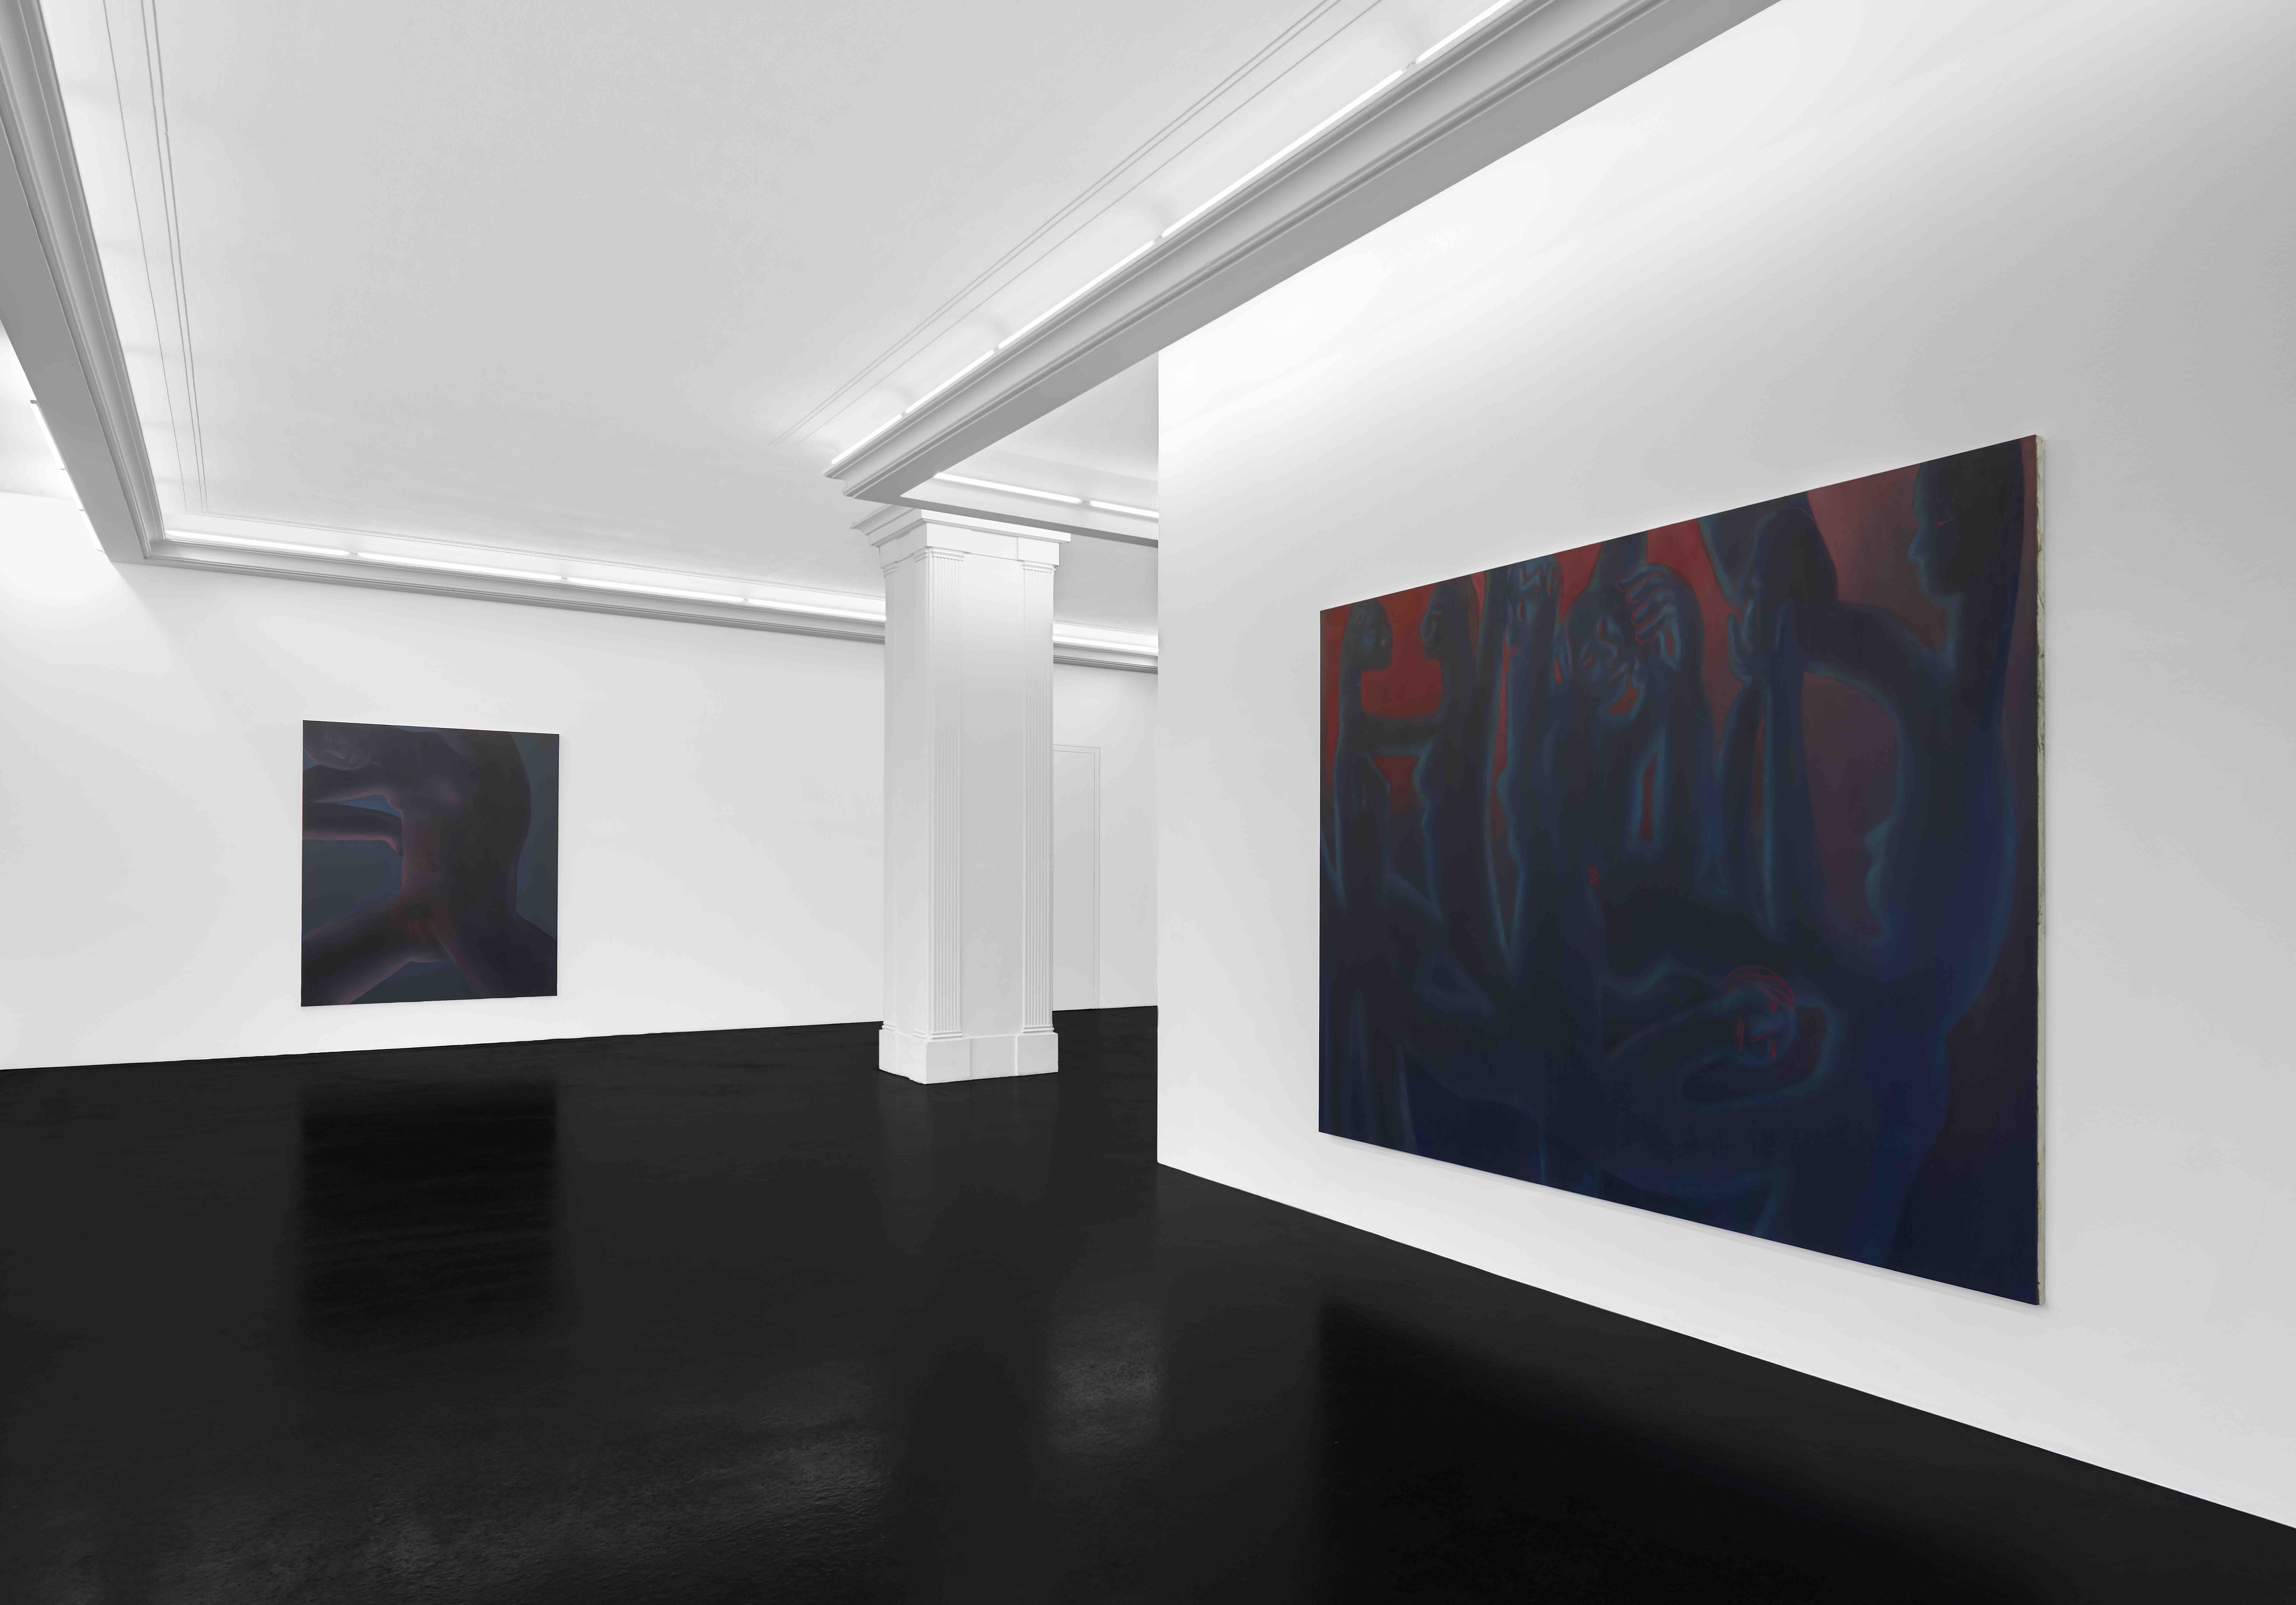 George Rouy, Maelstrom, Installation View, January 17 – February 14, 2020 Peres Projects, Berlin. Photographed by: Matthias Kolb